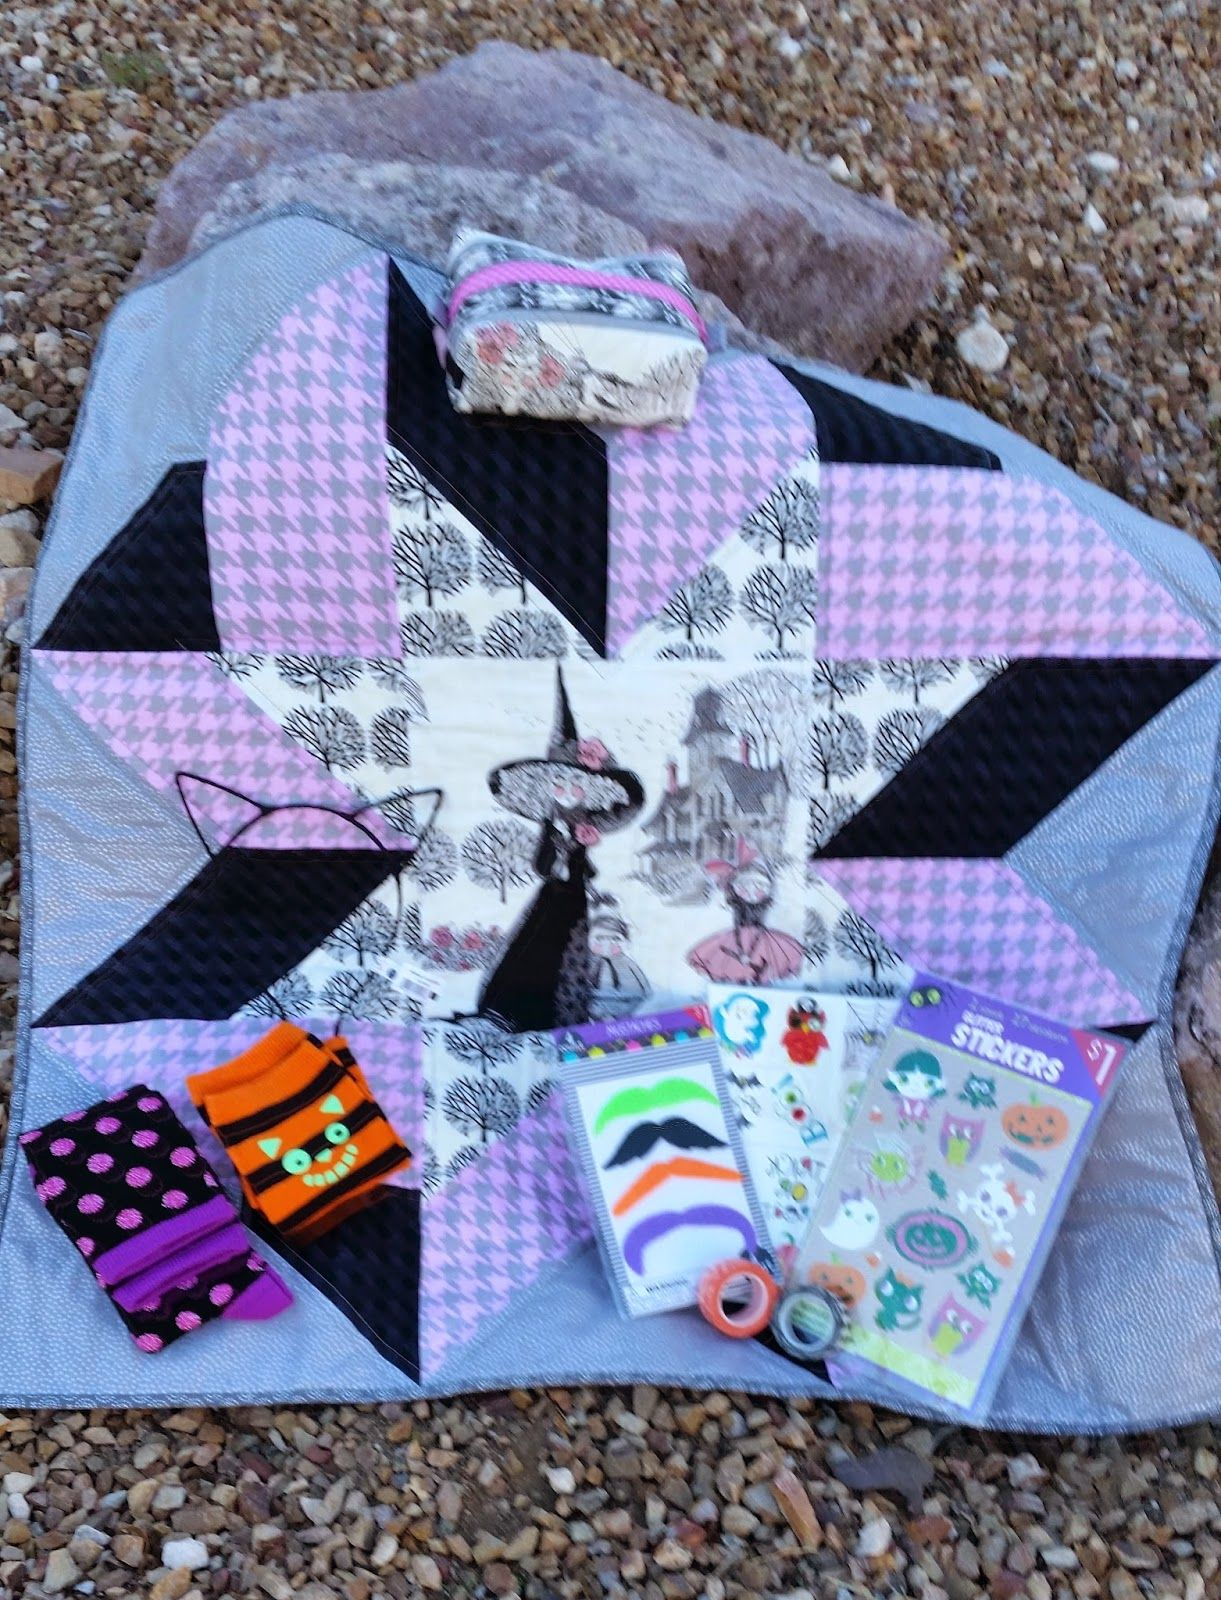 Kwilty Pleasures: GHASTLIES REVEAL - DAY 3 - Wednesday @craftyjennifer made the mini quilt, other items added to swap package